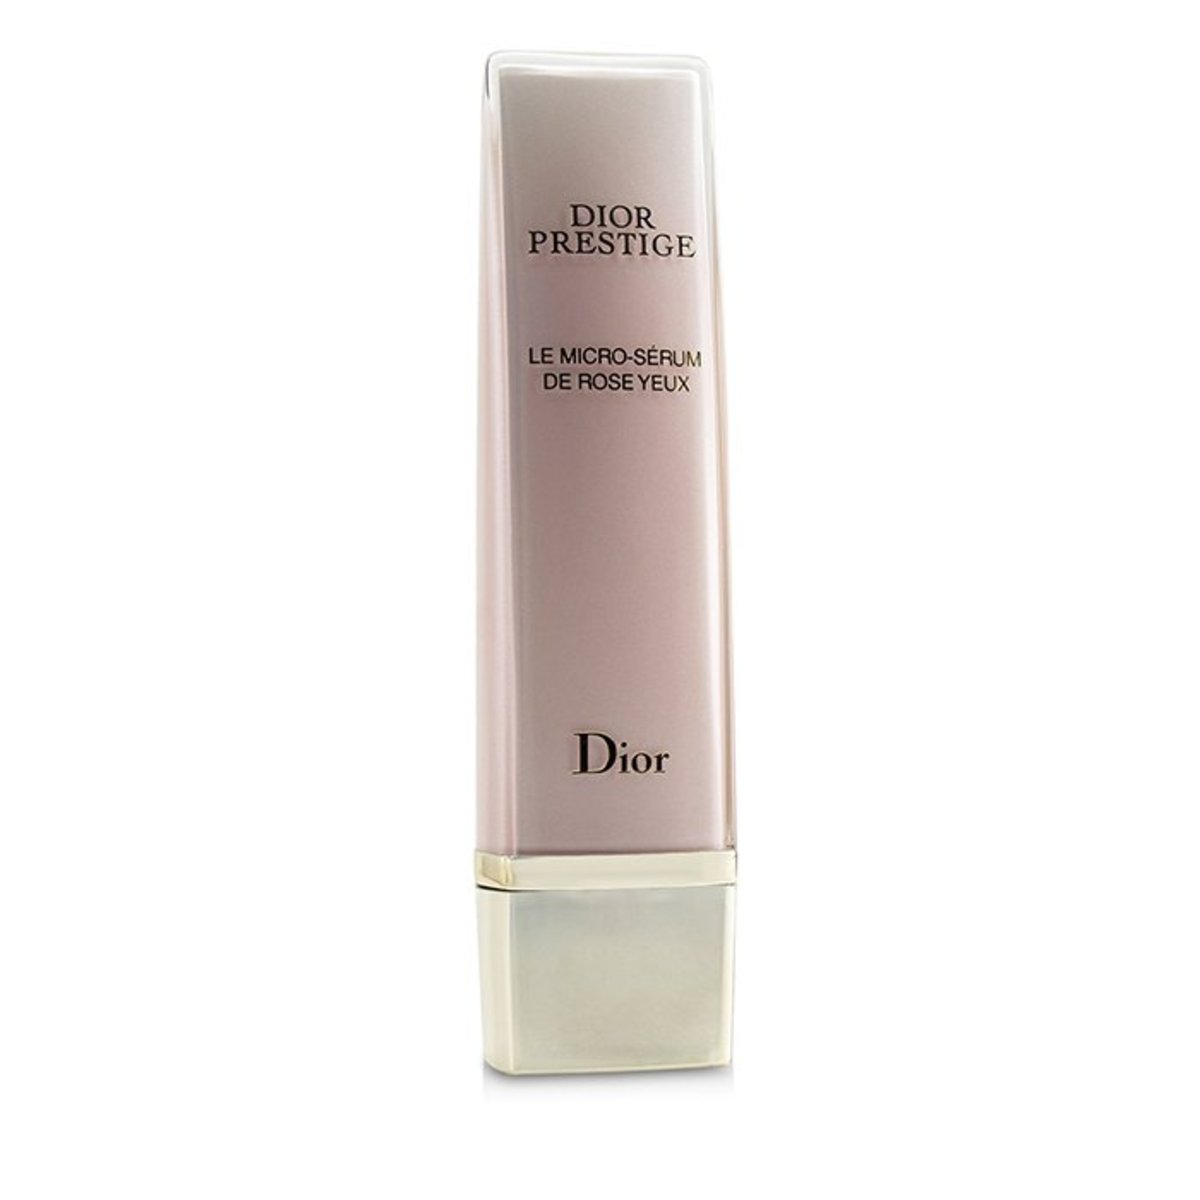 Dior Prestige Le Micro-Serum De Rose Yeux Illuminating Micro-Nutritive Eye Serum 39890/C099600087 15ml [Parallel Import]